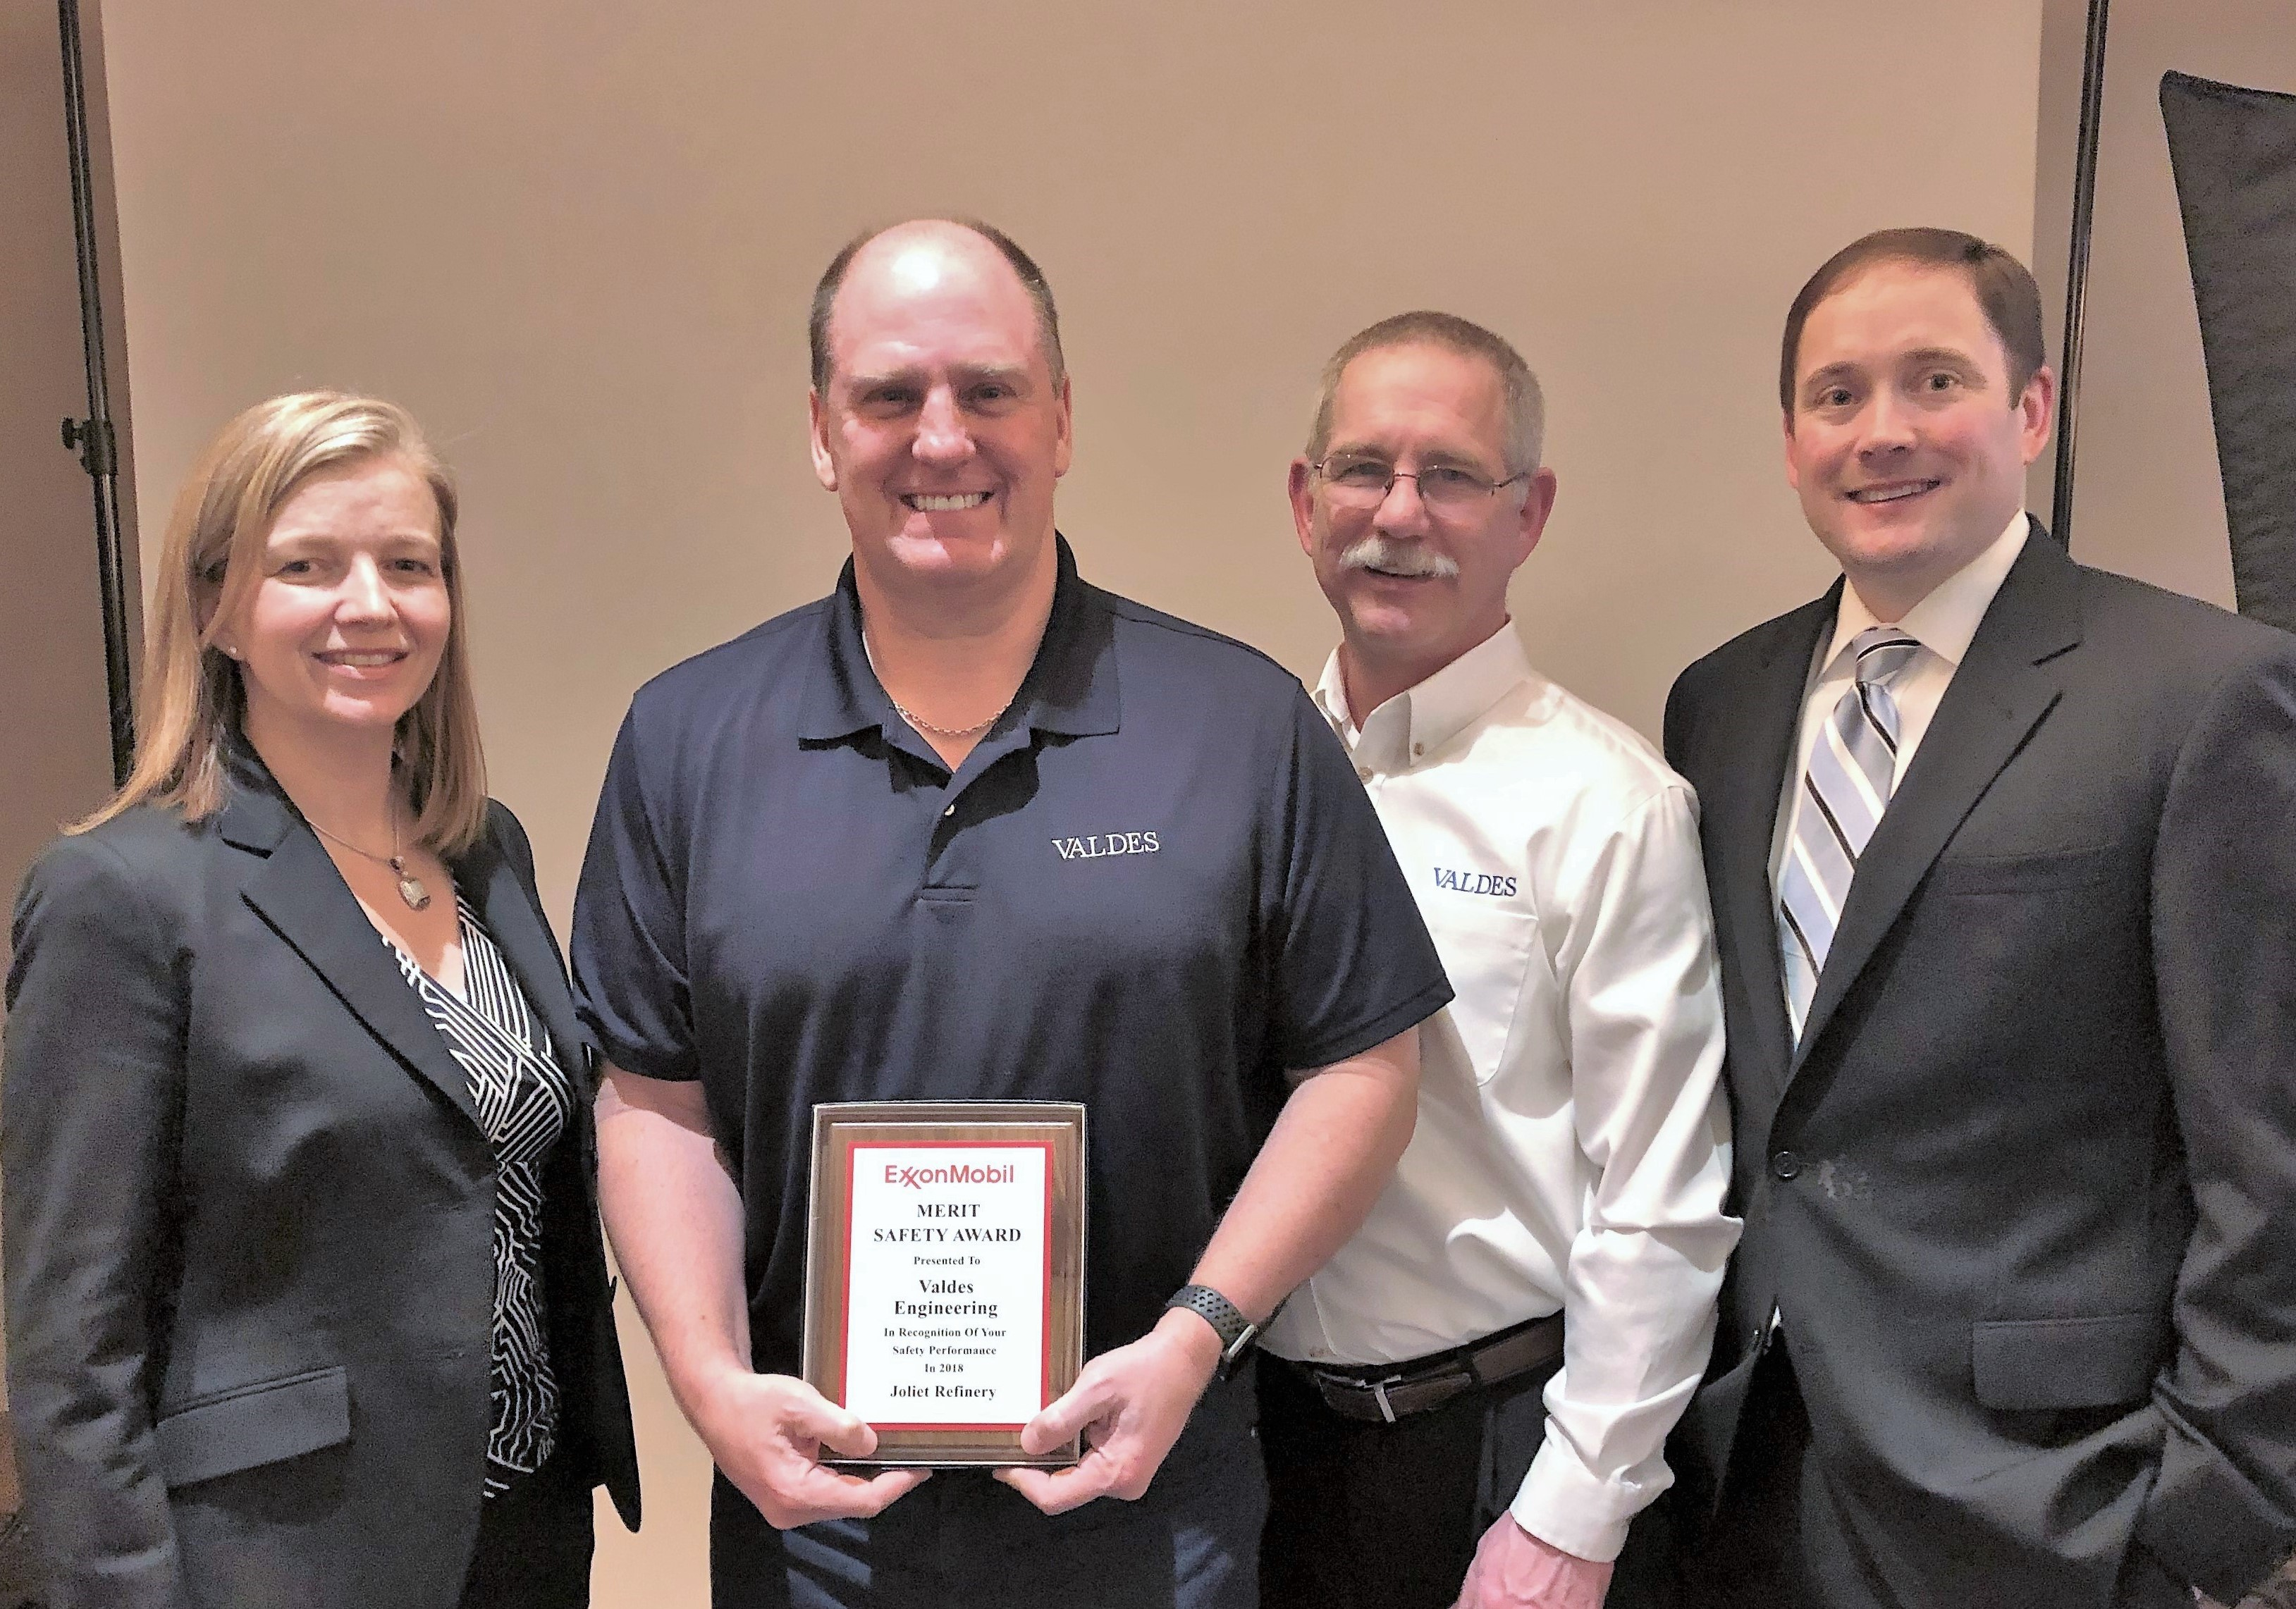 2018 ExxonMobil Merit Safety Award